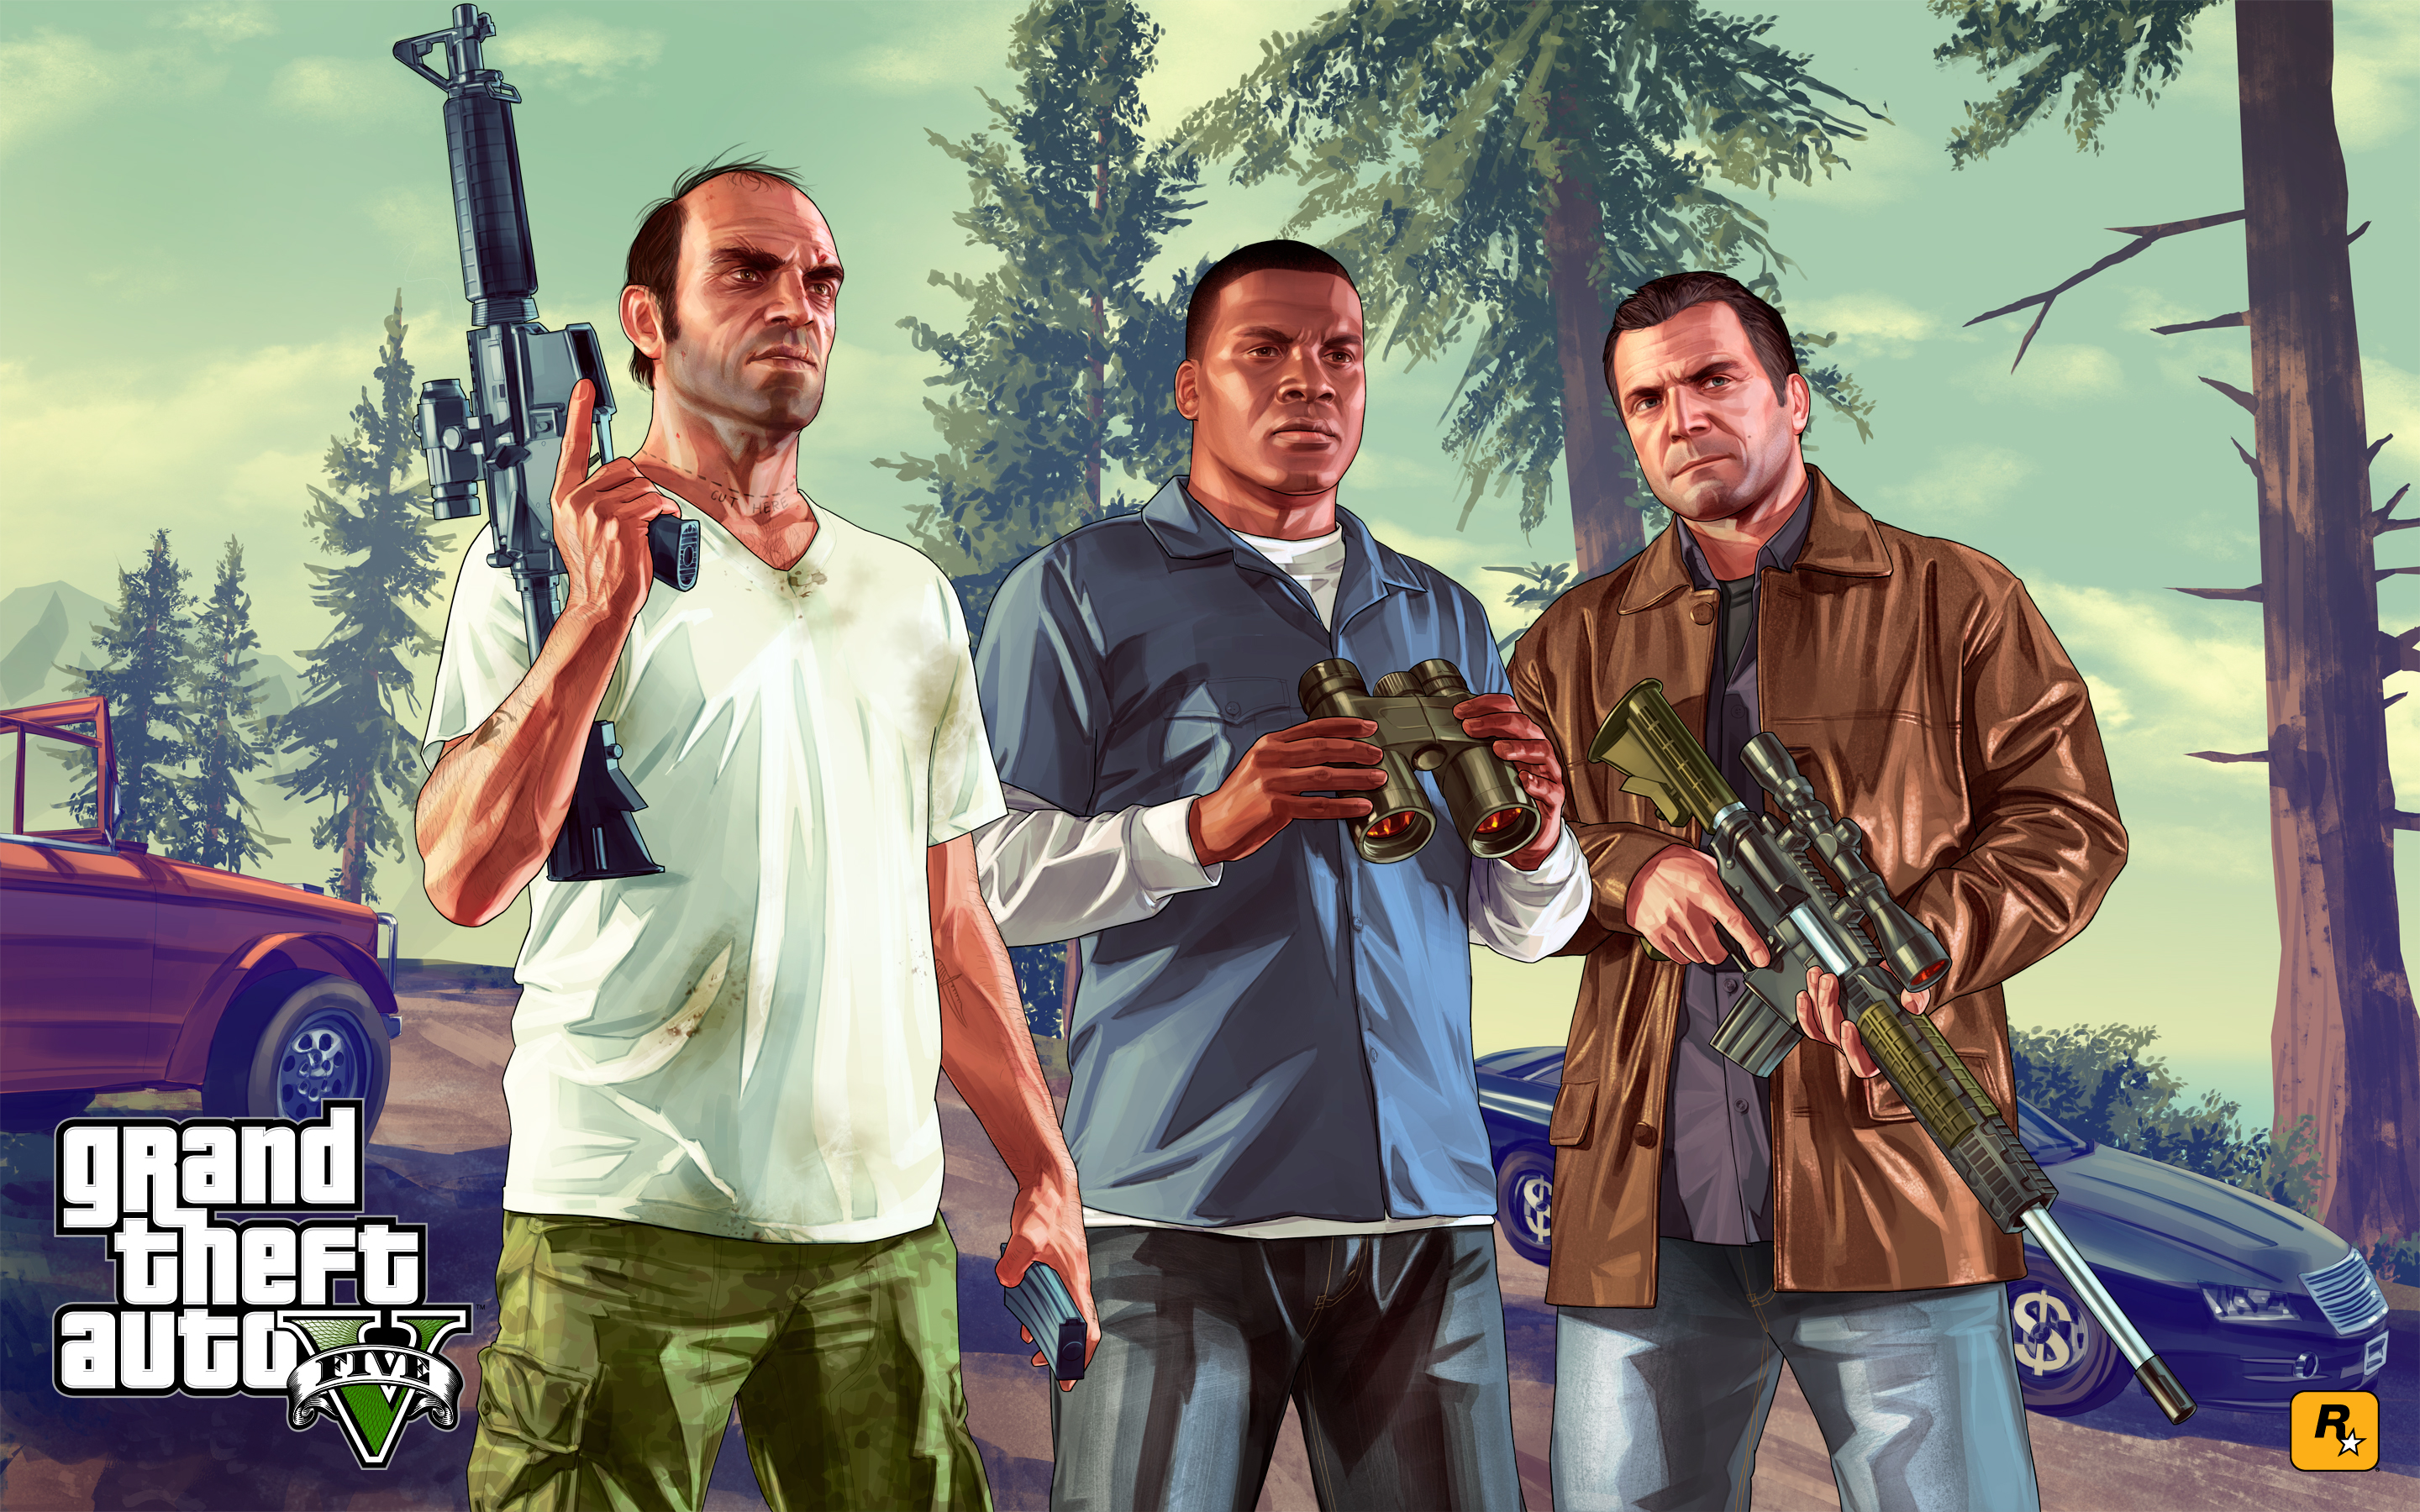 Grand Theft Auto GTA 5 Wallpapers HD Wallpapers 2880x1800